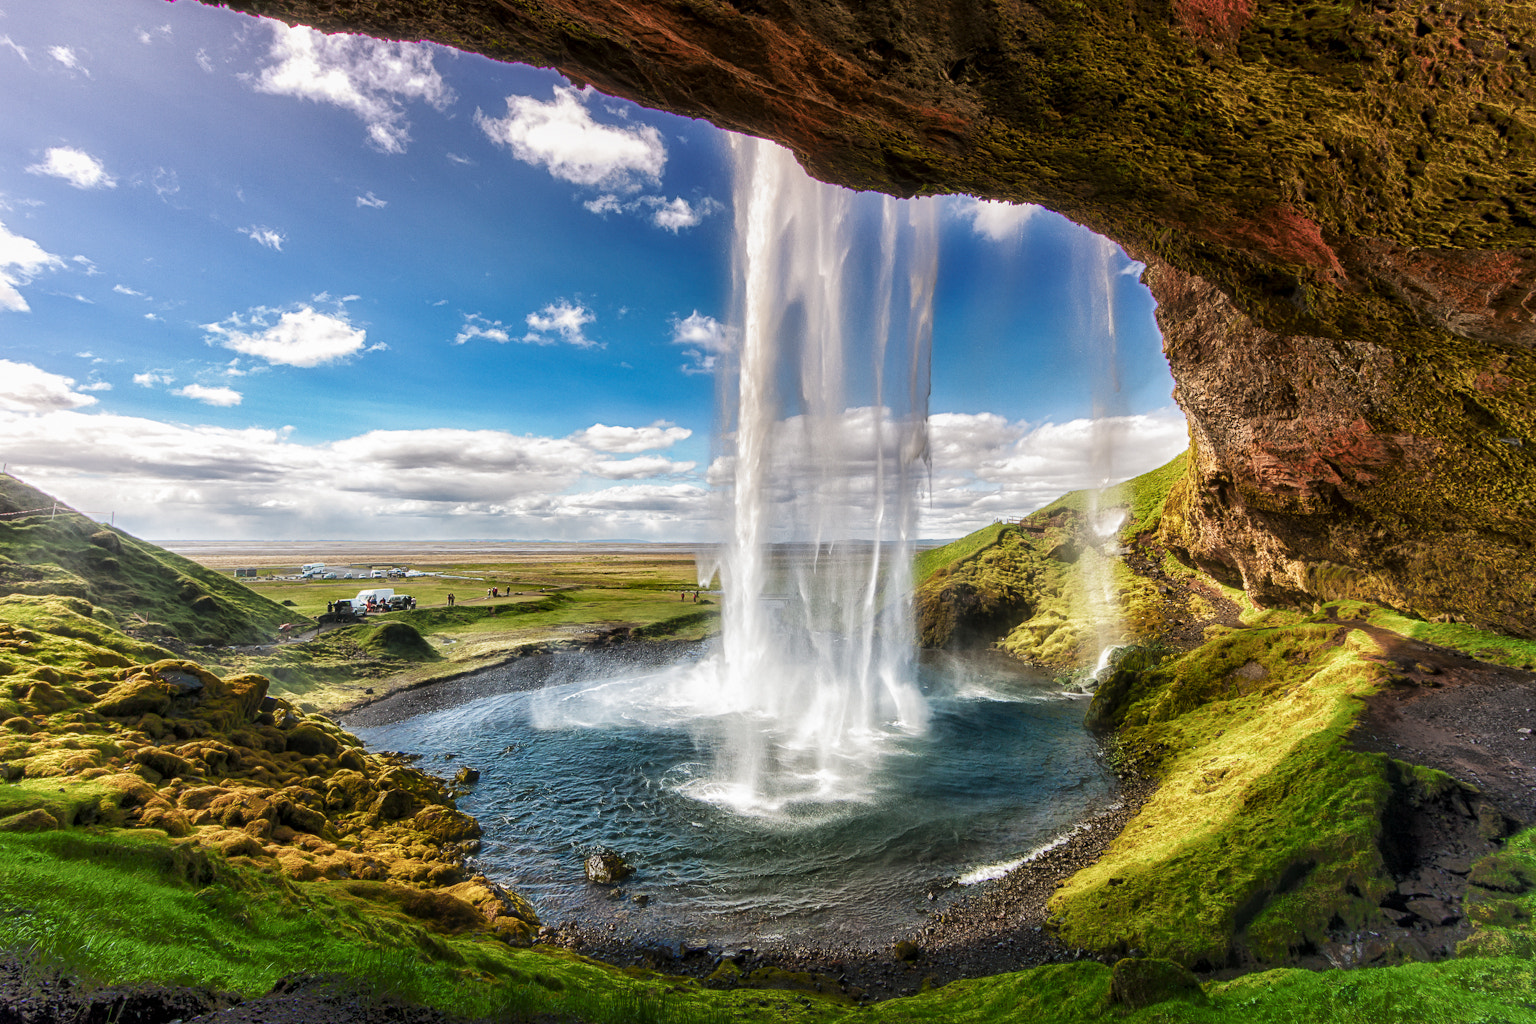 Photograph Seljalandsfoss by Dave Wright on 500px